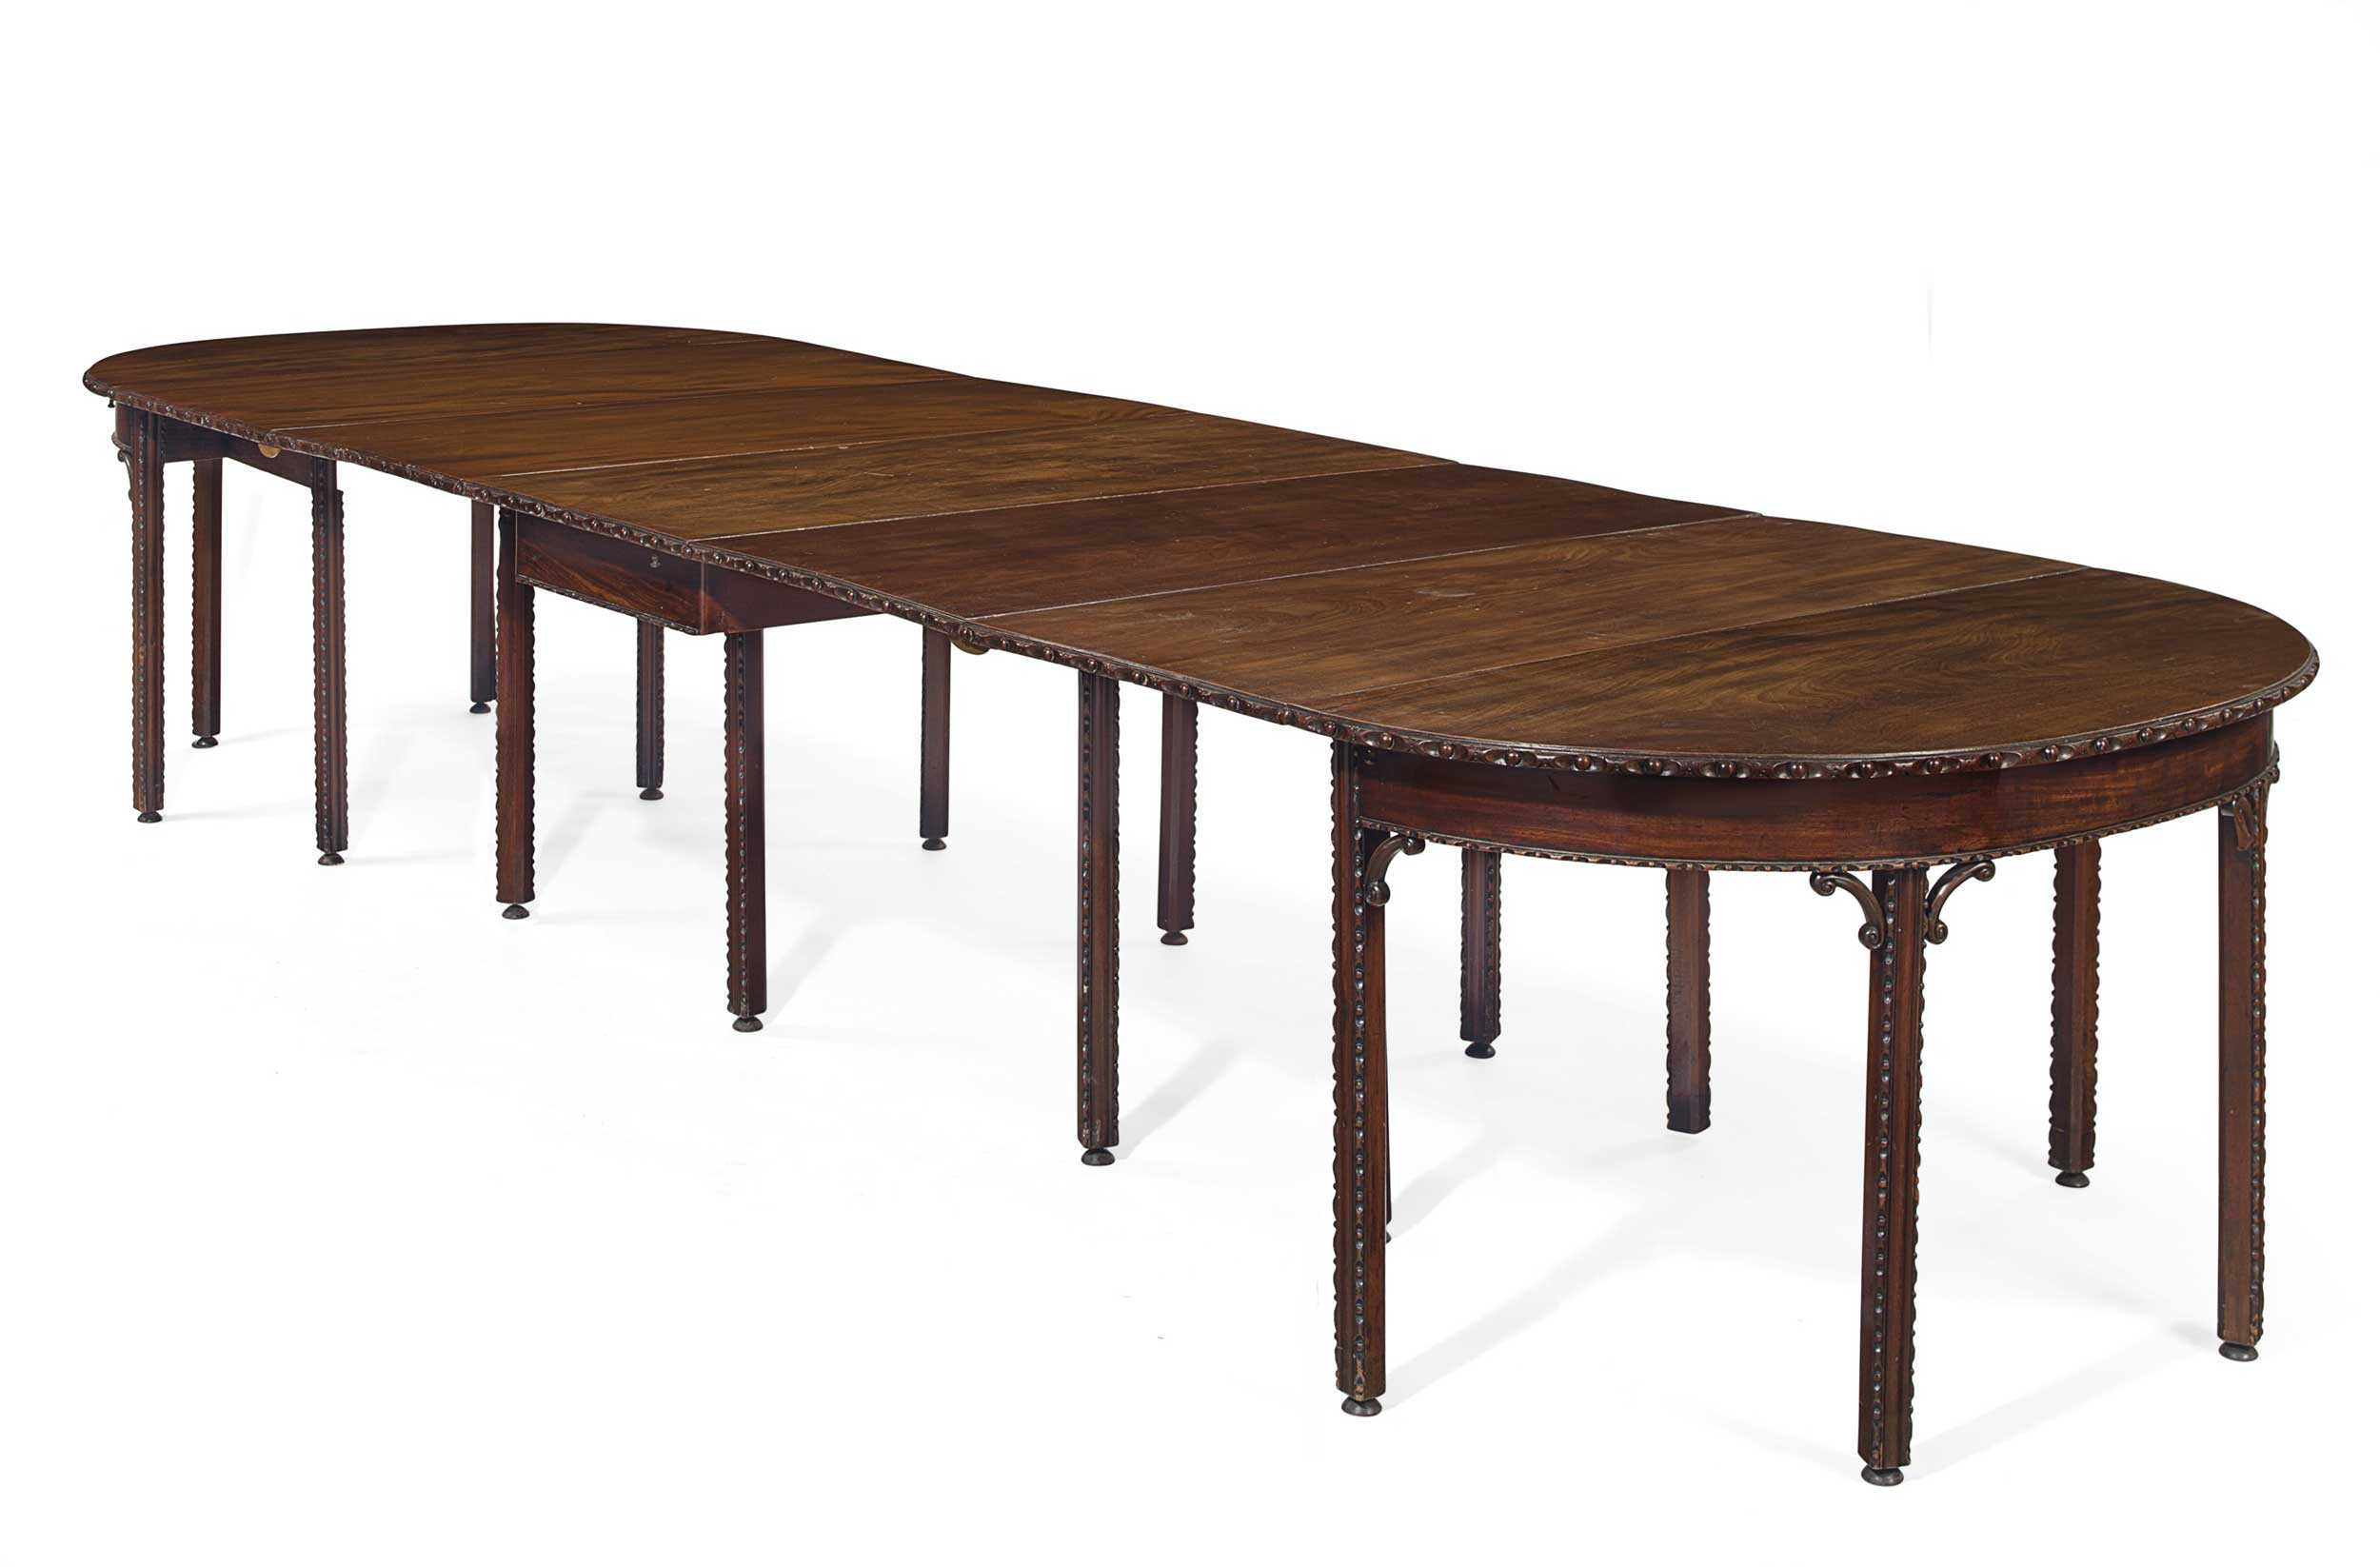 <b>An Early George III Mahogany Gate-Leg D-End Dining Table</b><br/>Circa 1760